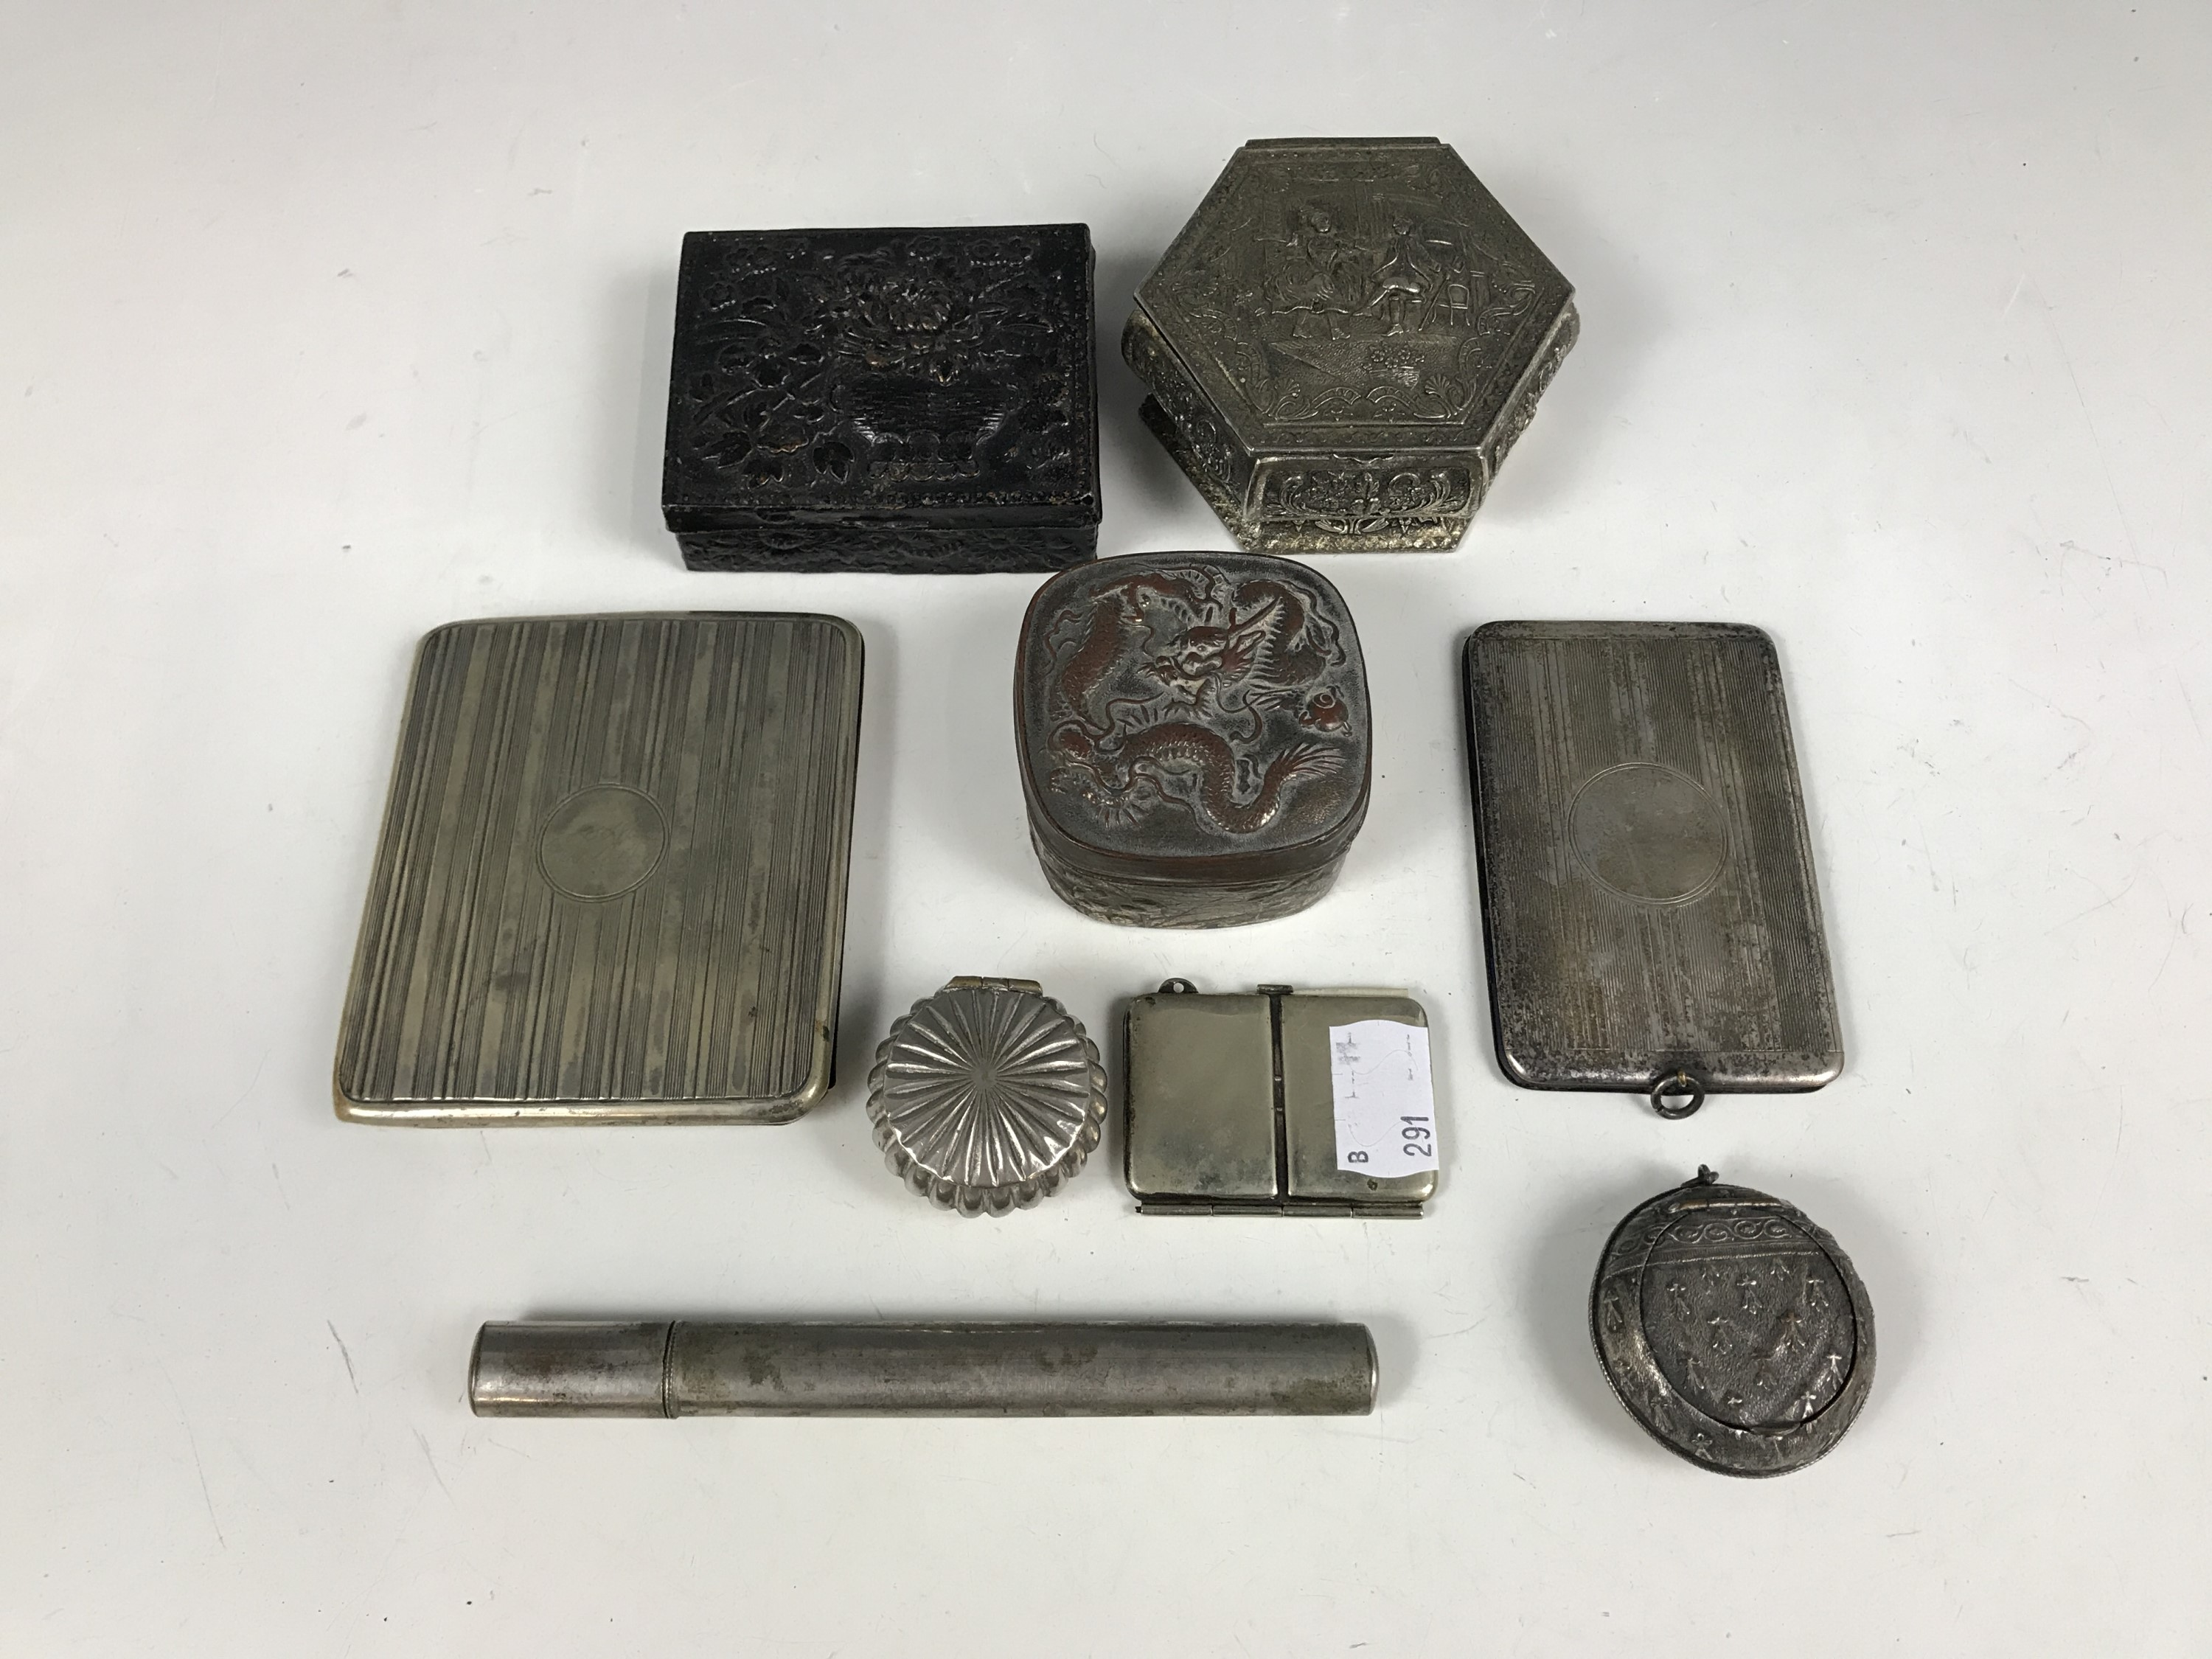 Lot 29 - Sundry collectors' items including three lidded boxes and an electroplate cigarette case etc